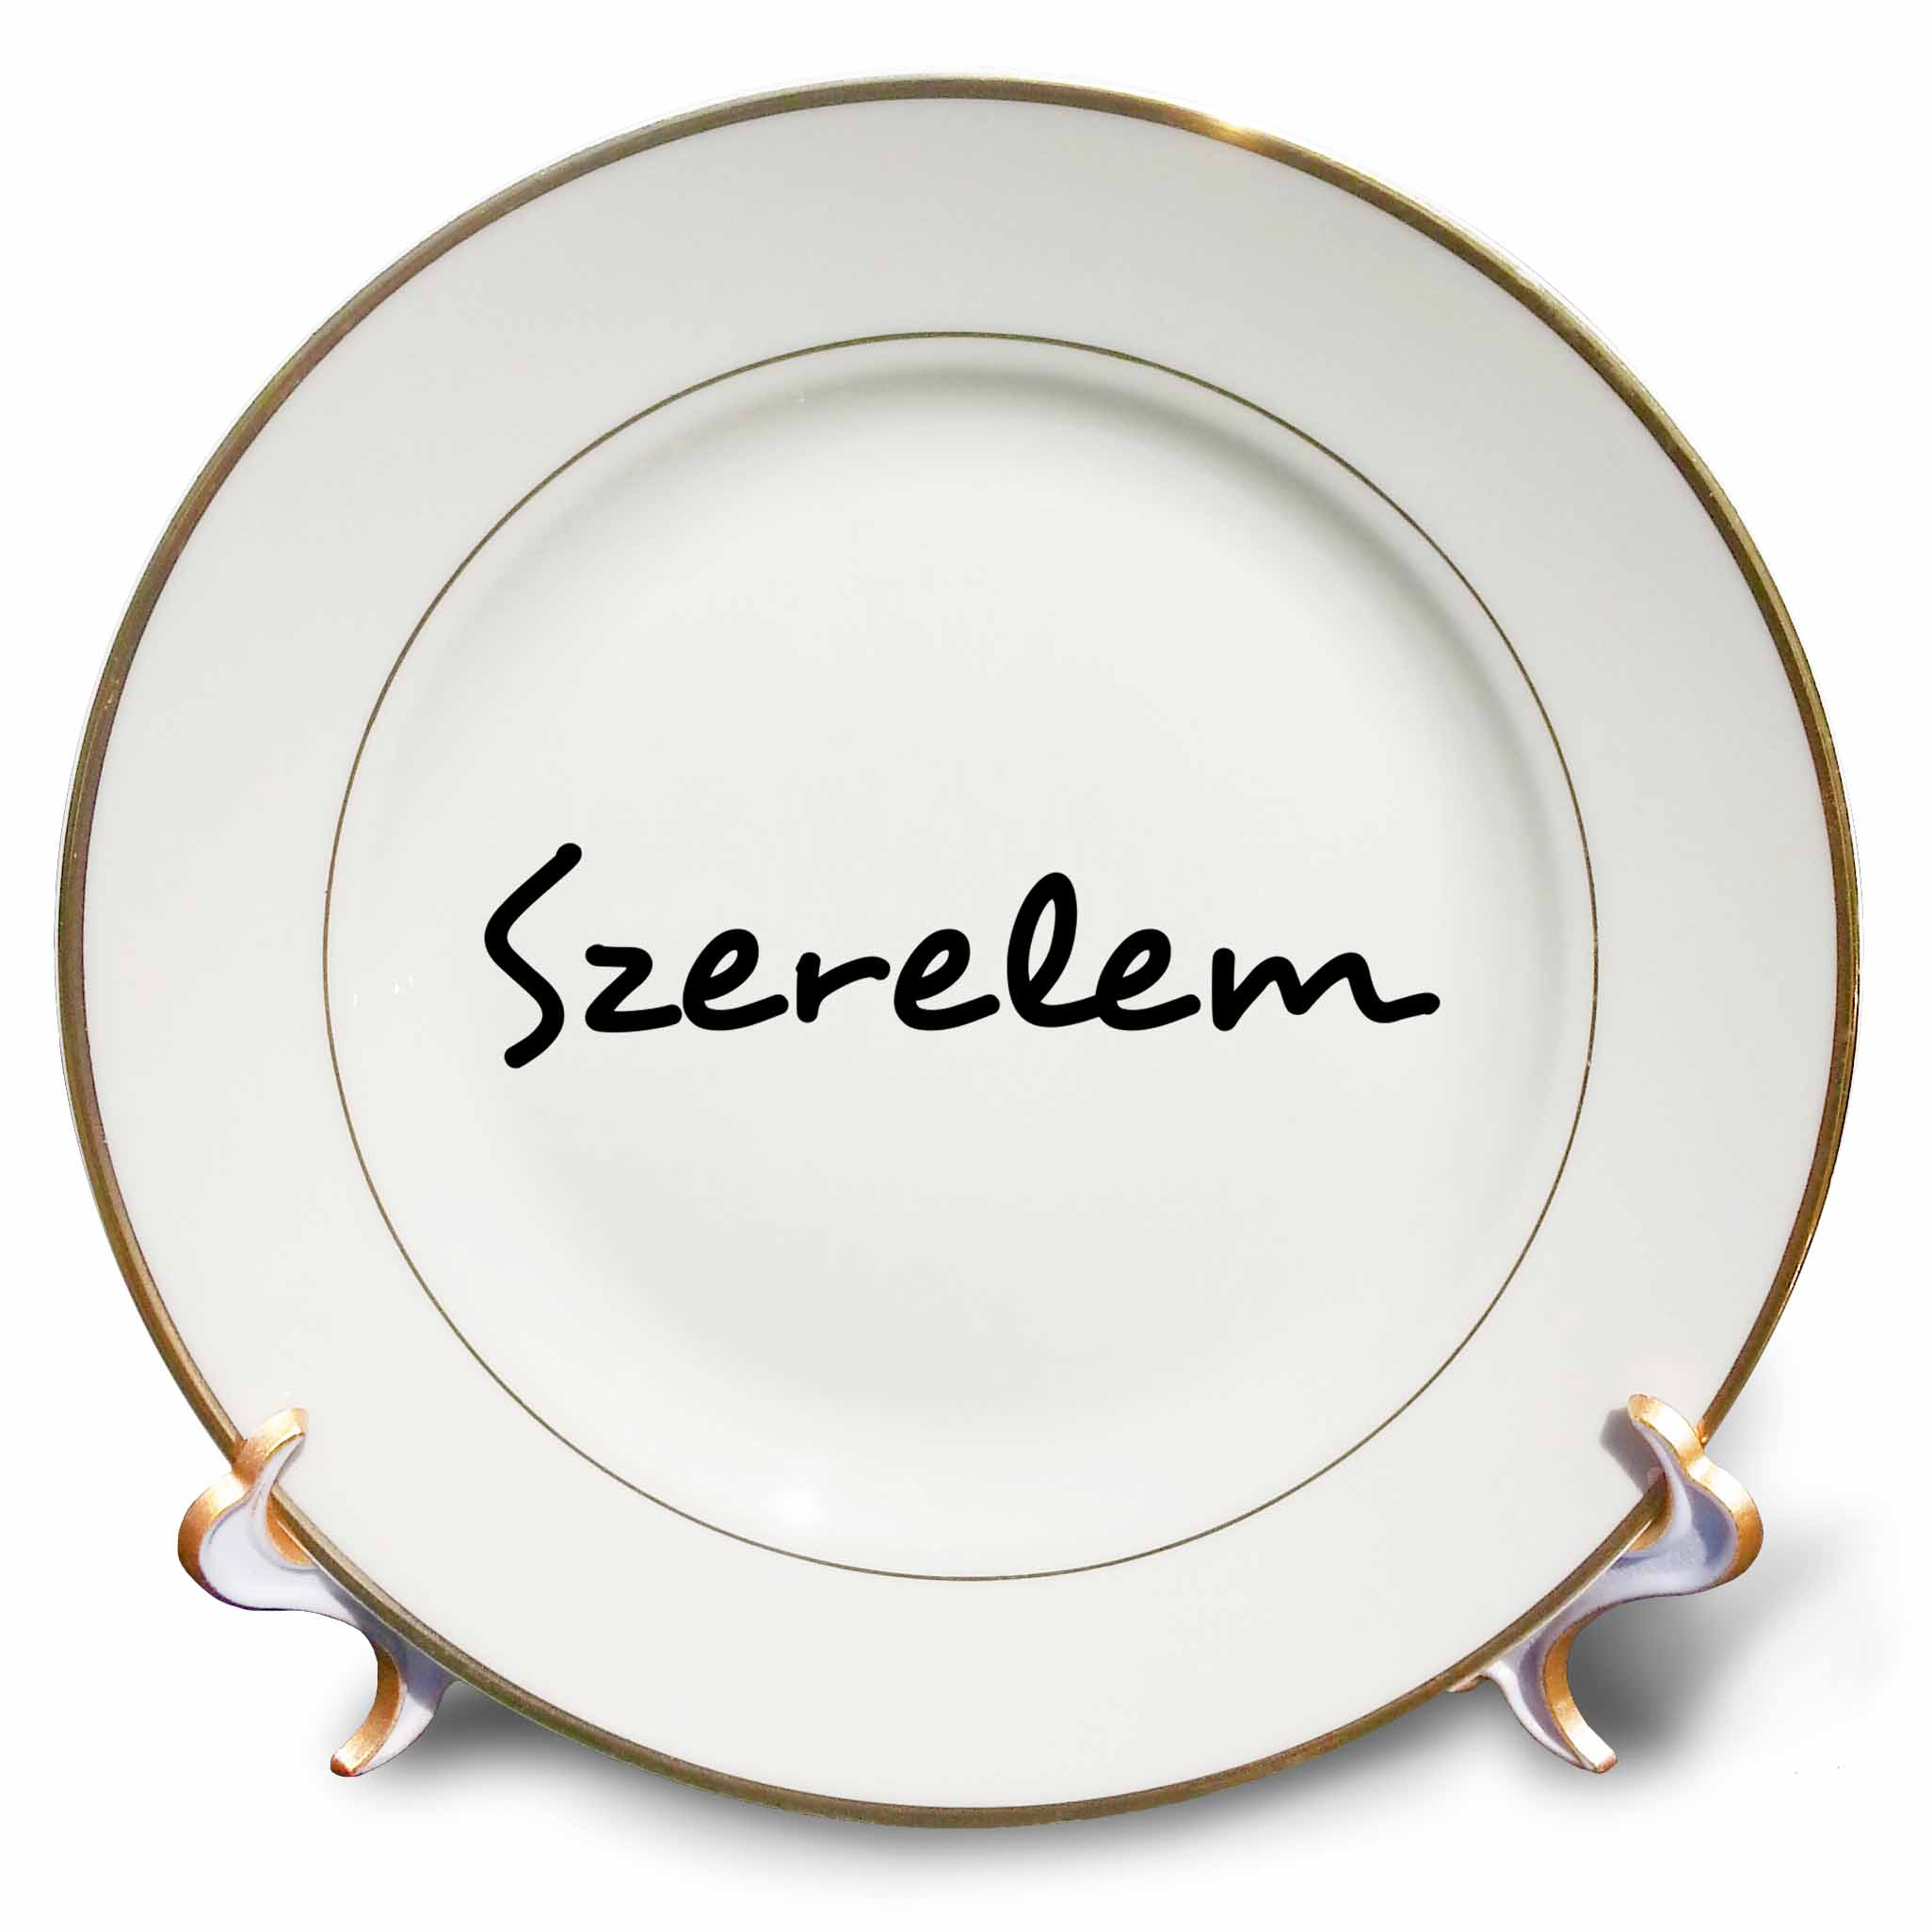 3dRose Szerelem Word for Love in Hungarian Romantic World Language Black Text-Porcelain Plate 8-inch cp/_185035/_1